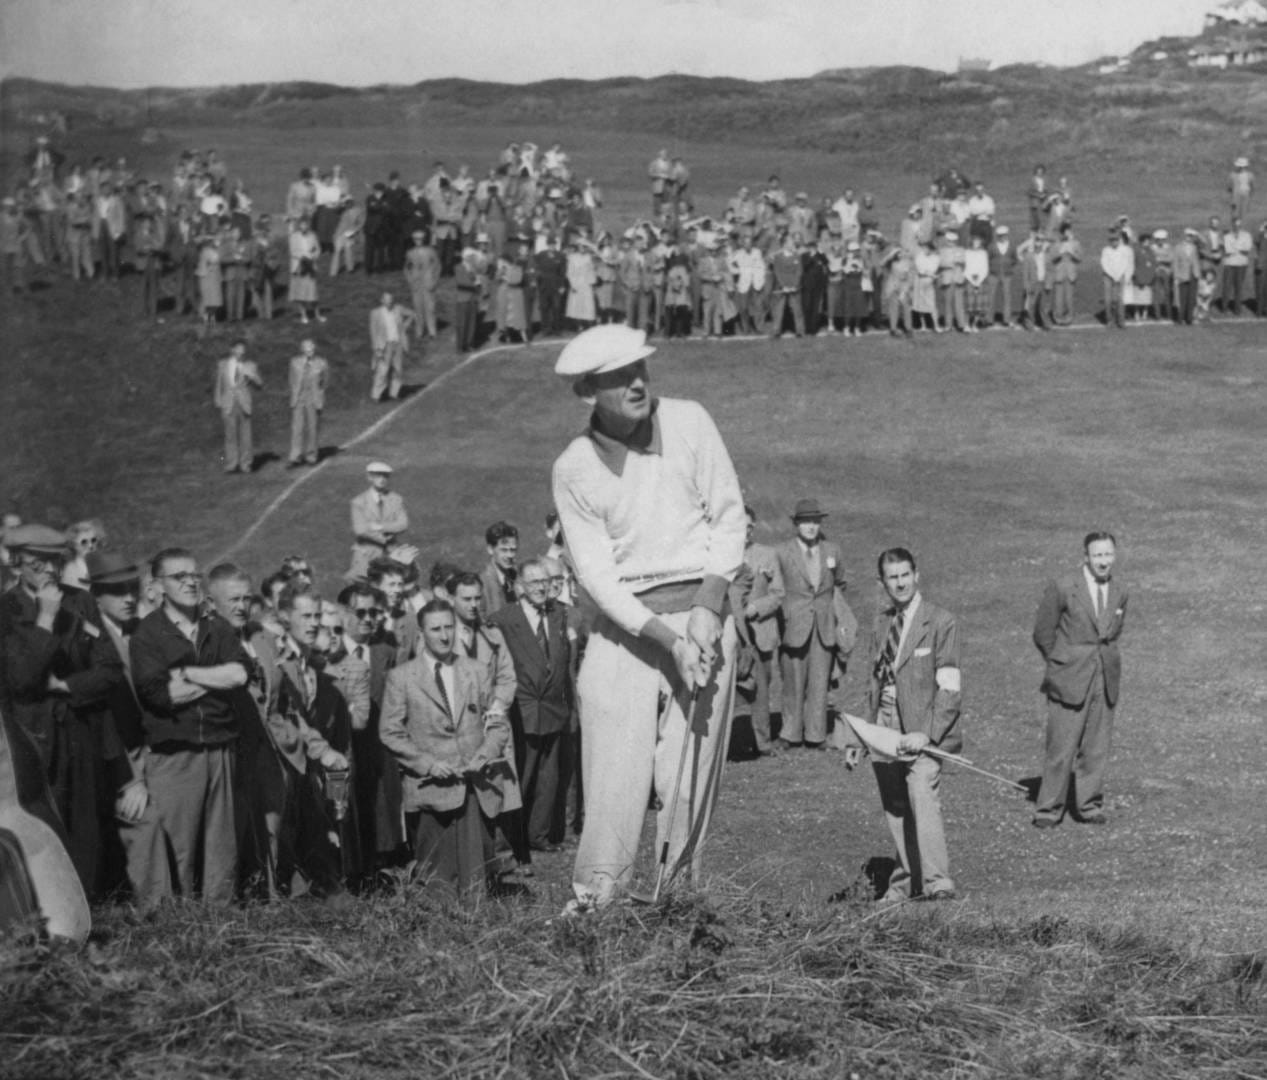 Norman Von Nida at the 1951 Open Championship